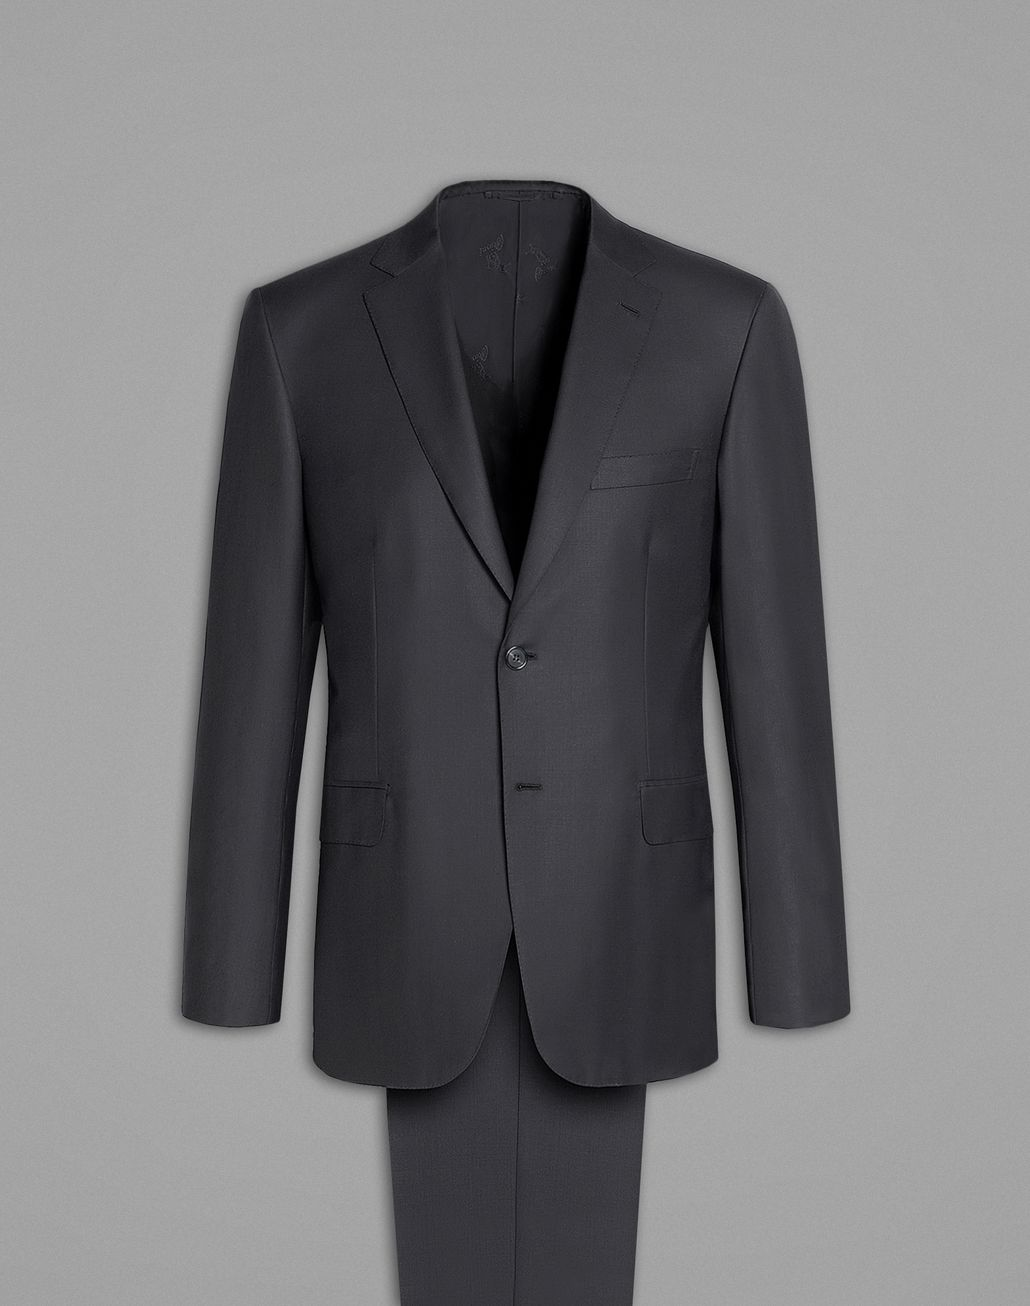 BRIONI Charcoal Brunico Suit Suits & Jackets Man f